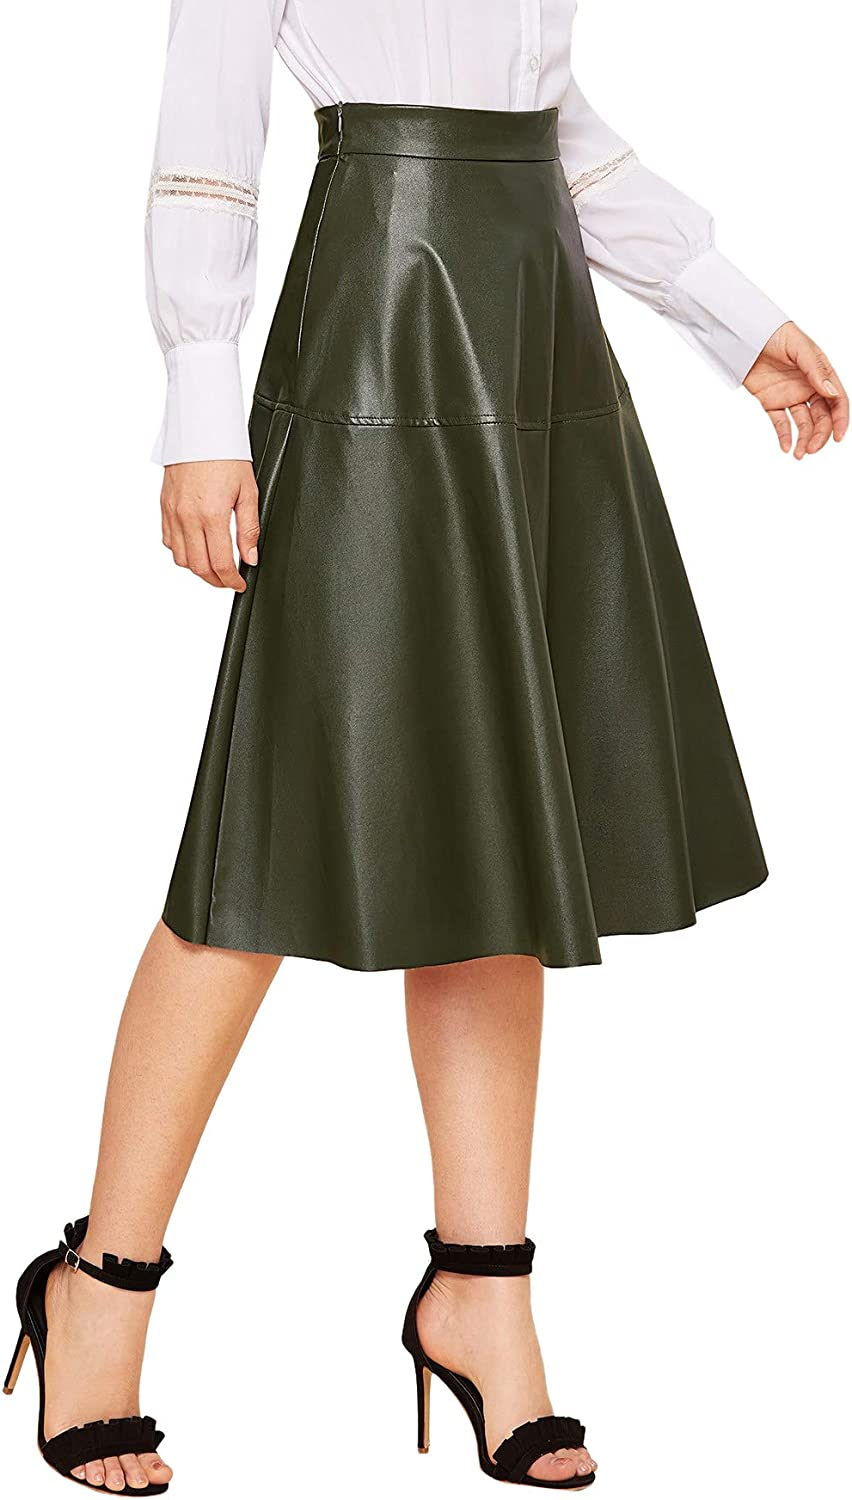 WDIRARA Women's Vintage High Waist Flared Skirt Midi PU Skirt